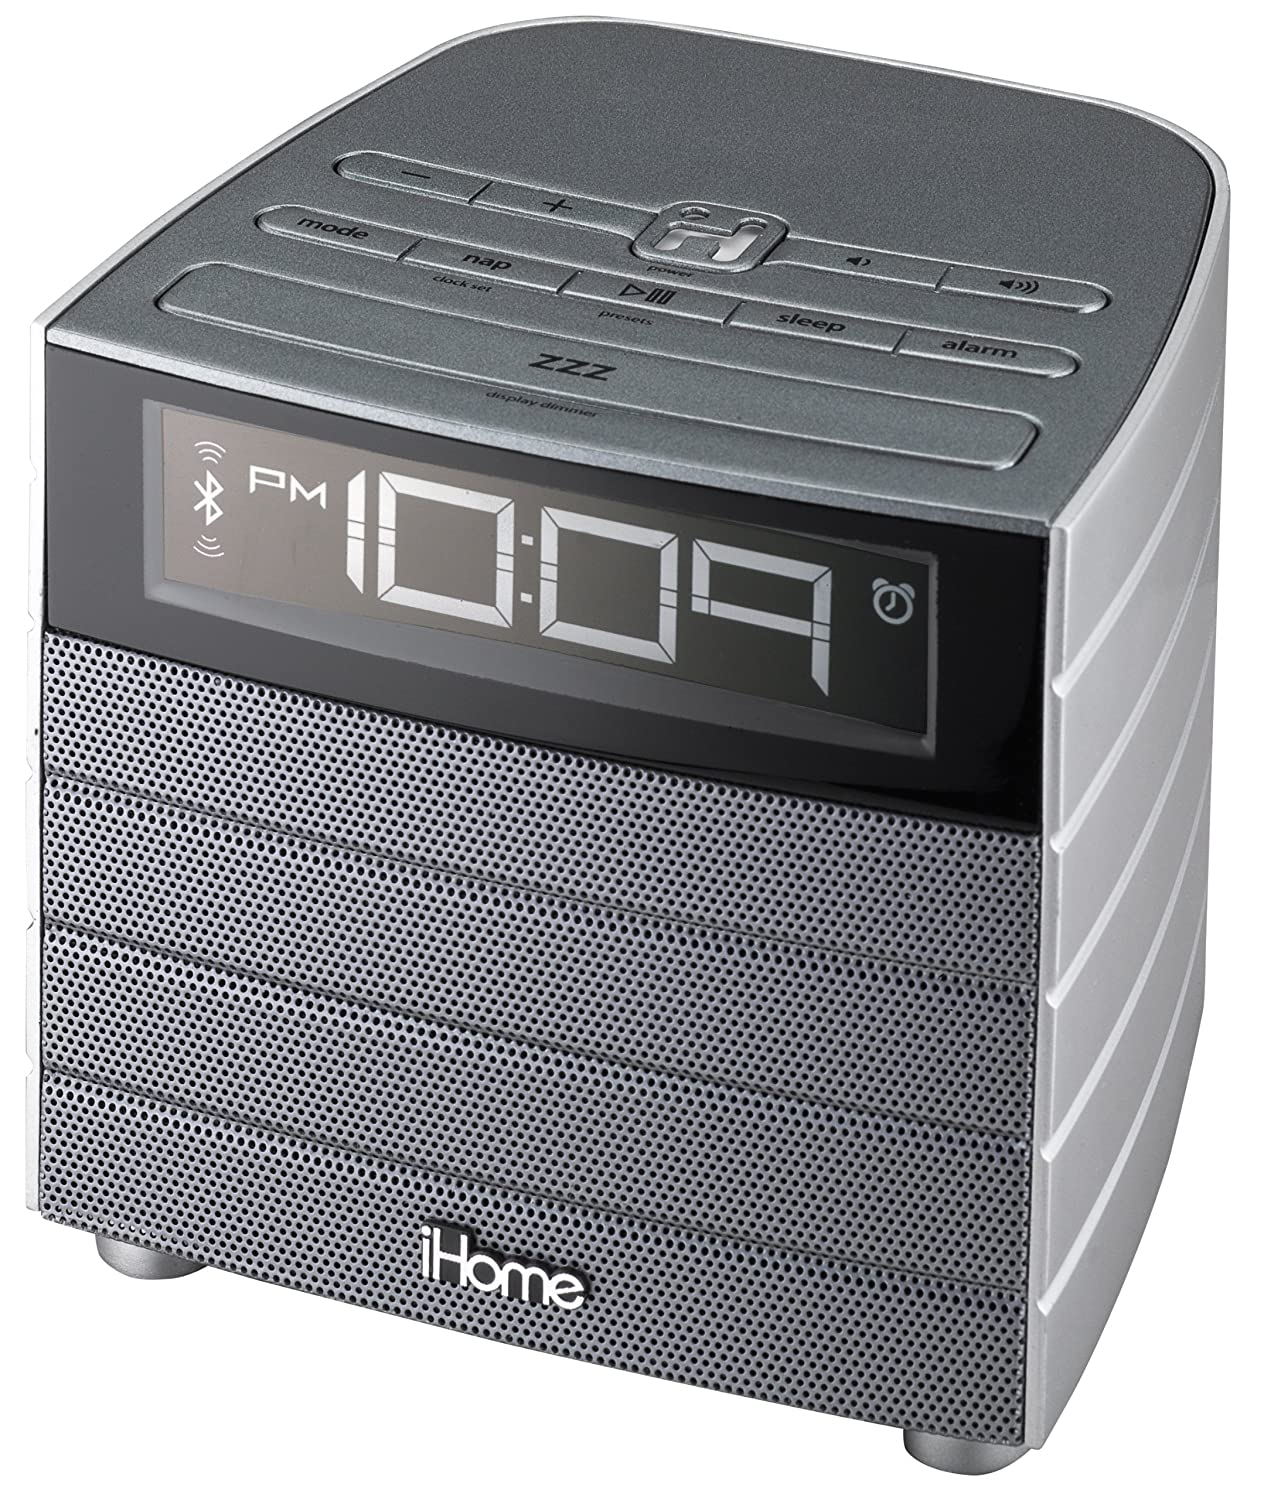 ihome ibn20gc bluetooth wireless fm clock radio with usb charging radio alarm clocks electronics. Black Bedroom Furniture Sets. Home Design Ideas